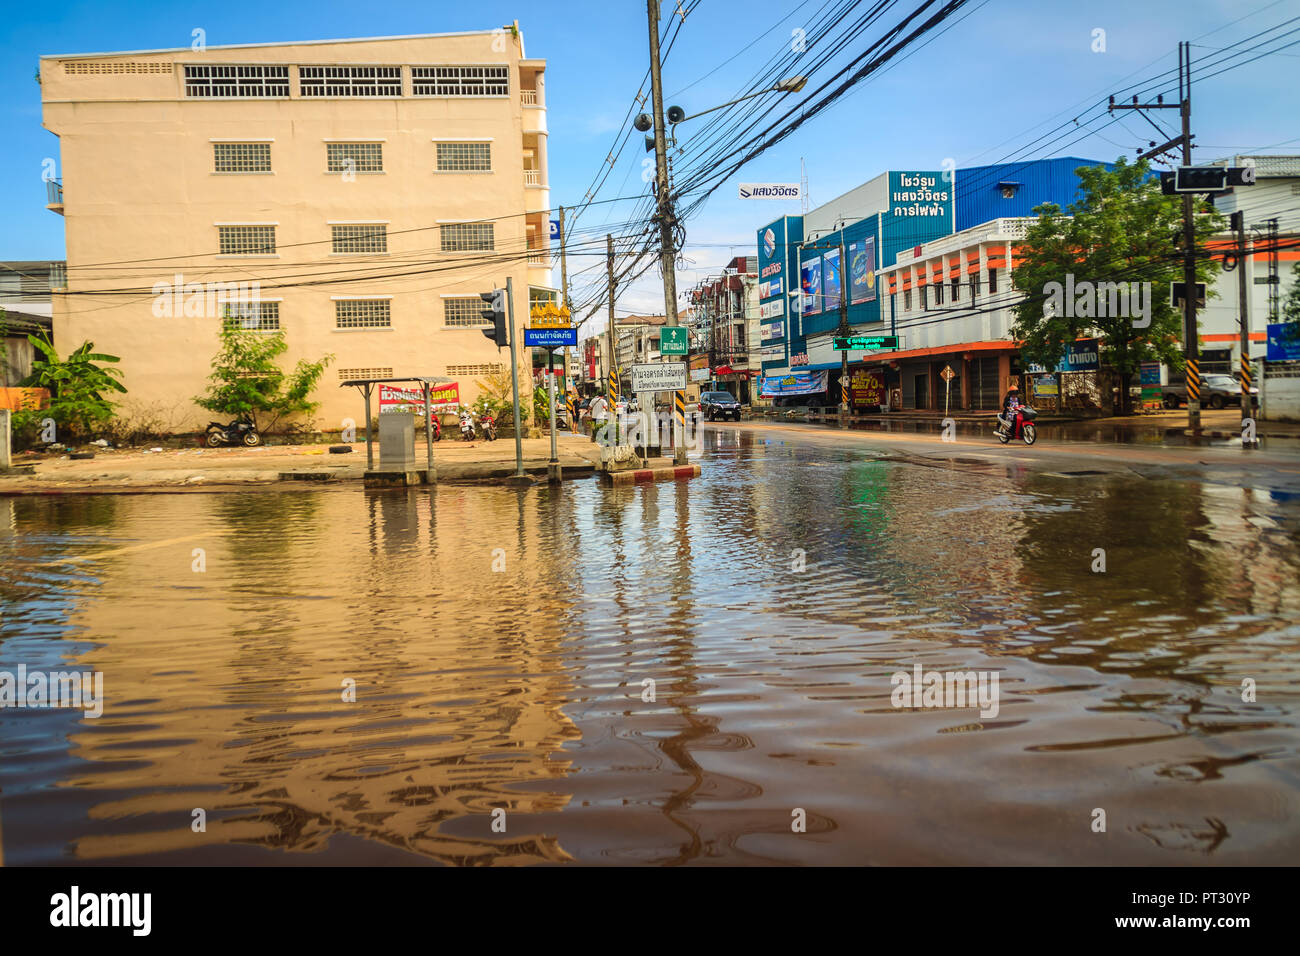 Sakon Nakhon, Thailand - August 4, 2017: Difficulty transportation in a heavy flooding situation in urban Sakon Nakhon, Thailand. The heavy flood in S - Stock Image